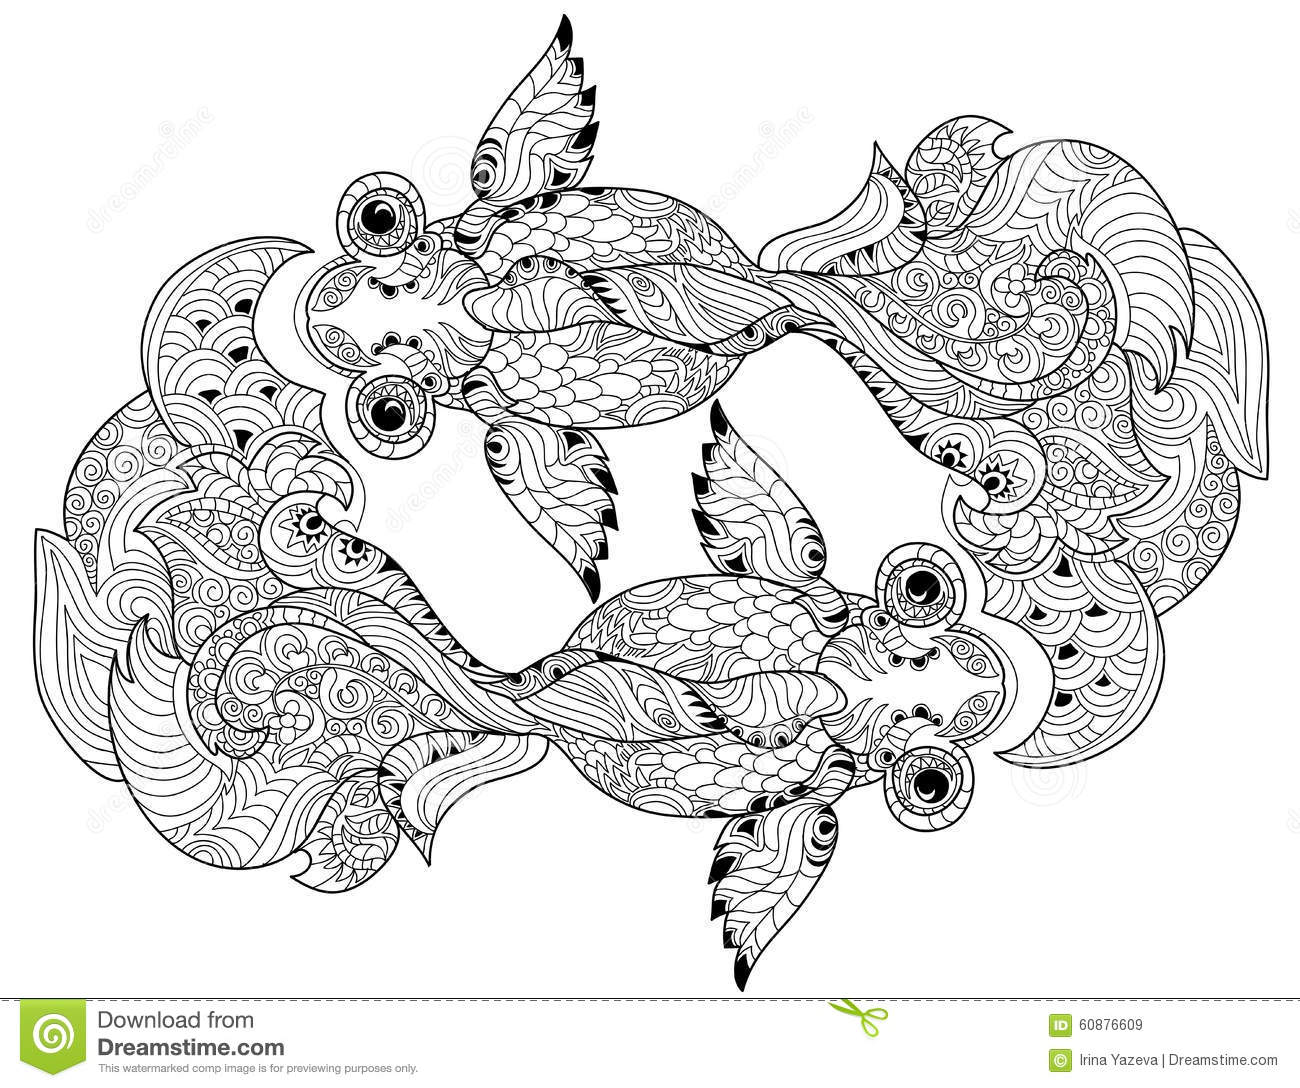 Zentangle Stylized Floral China Fish Doodle Stock Vector